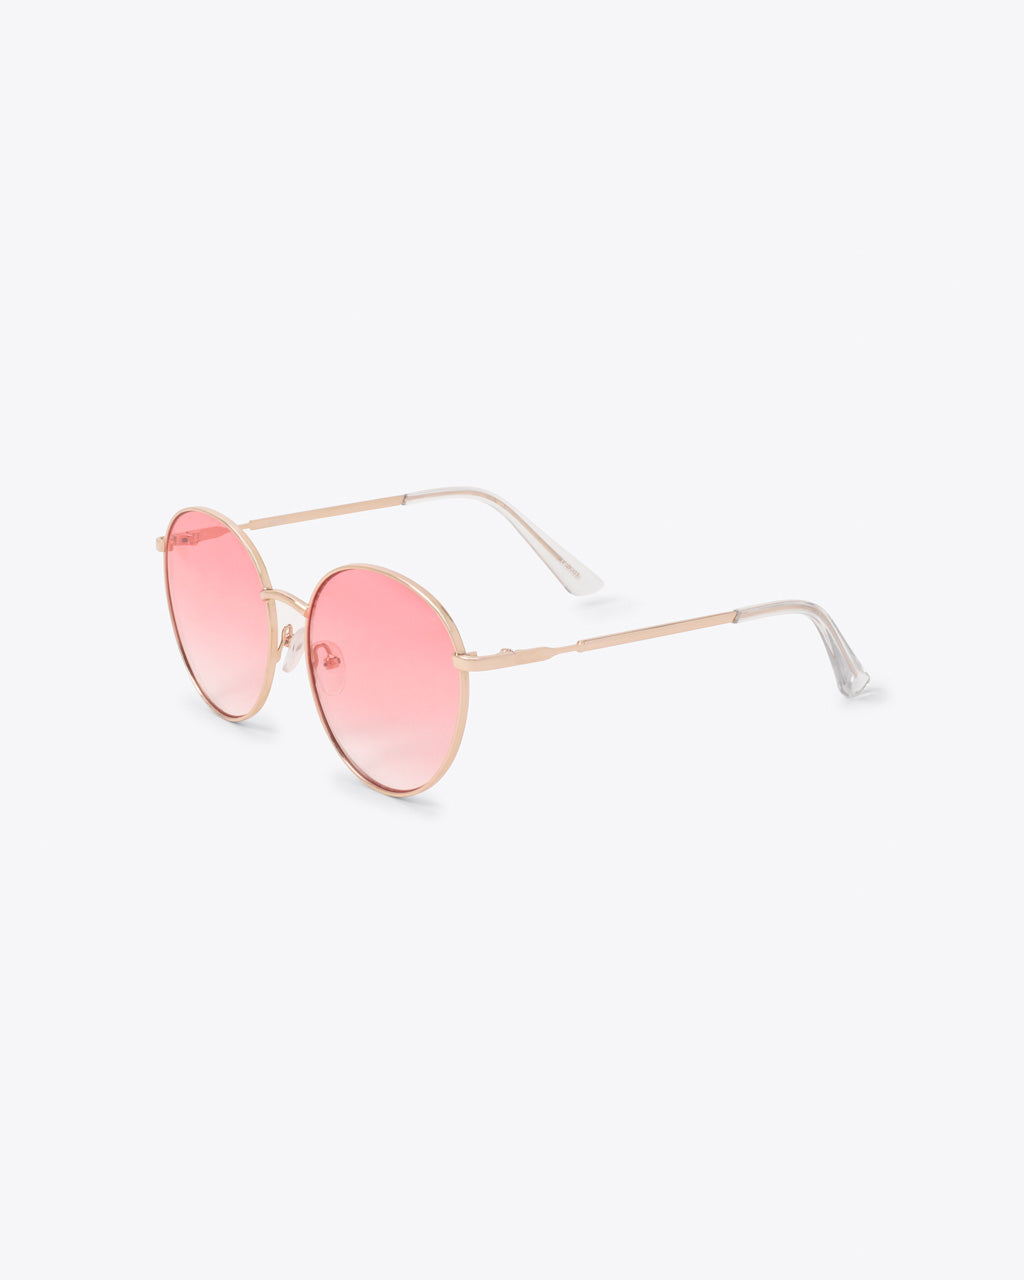 Oversized round sunglasses with pink lens